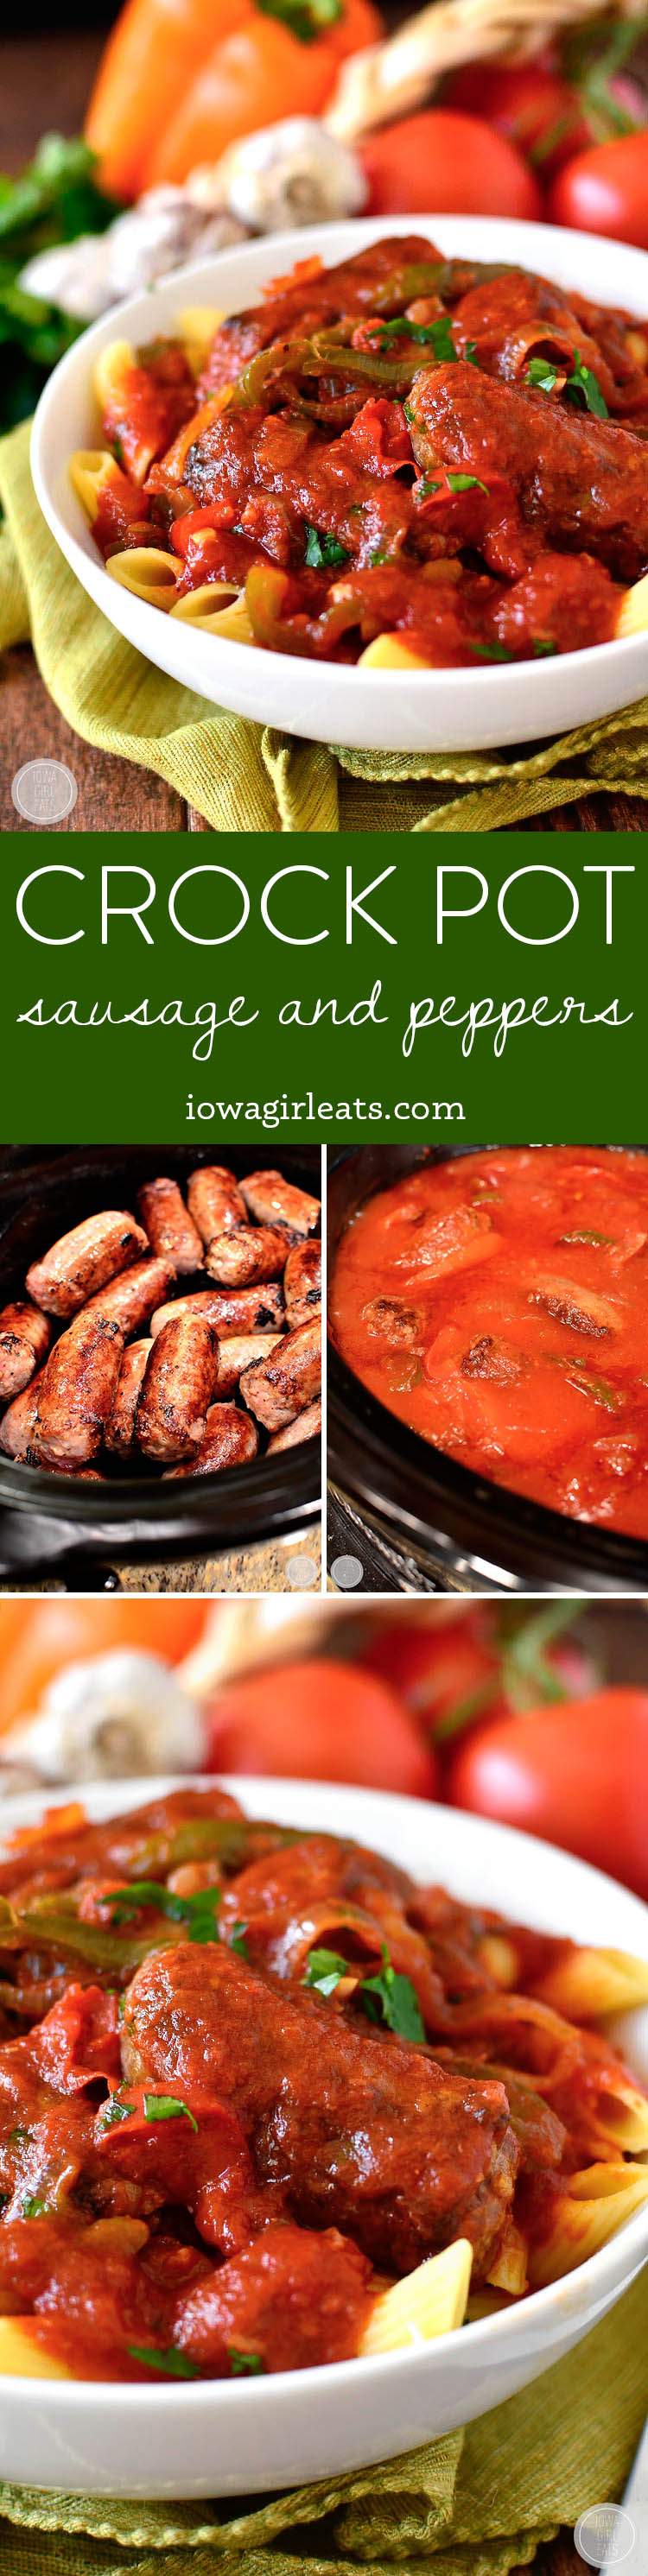 Crock Pot Sausage and Peppers are perfect for game day, a cozy supper at home, or any night you're craving an Italian feast! Serve over pasta, or with provolone and crusty rolls. | iowagirleats.com